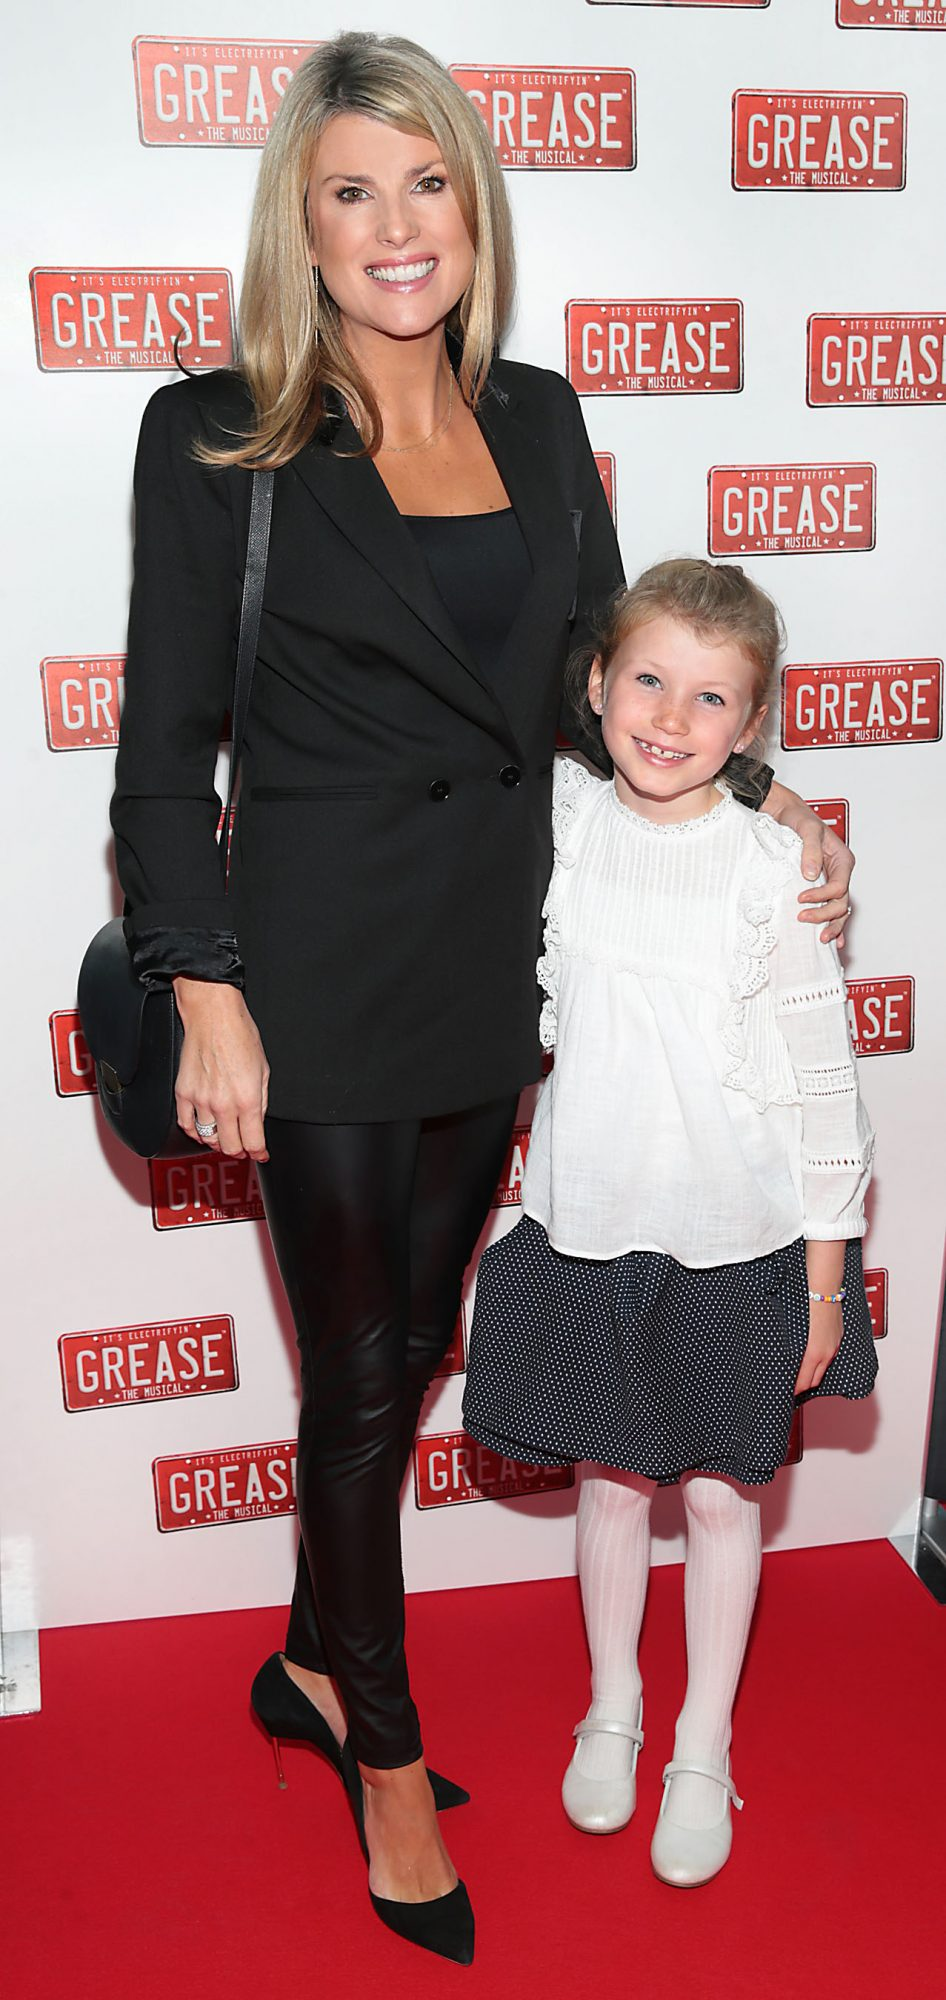 Jenny Buckley and daughter Jude  pictured at the opening night of the musical Grease at the Bord Gais Energy Theatre, Dublin. Pic: Brian McEvoy